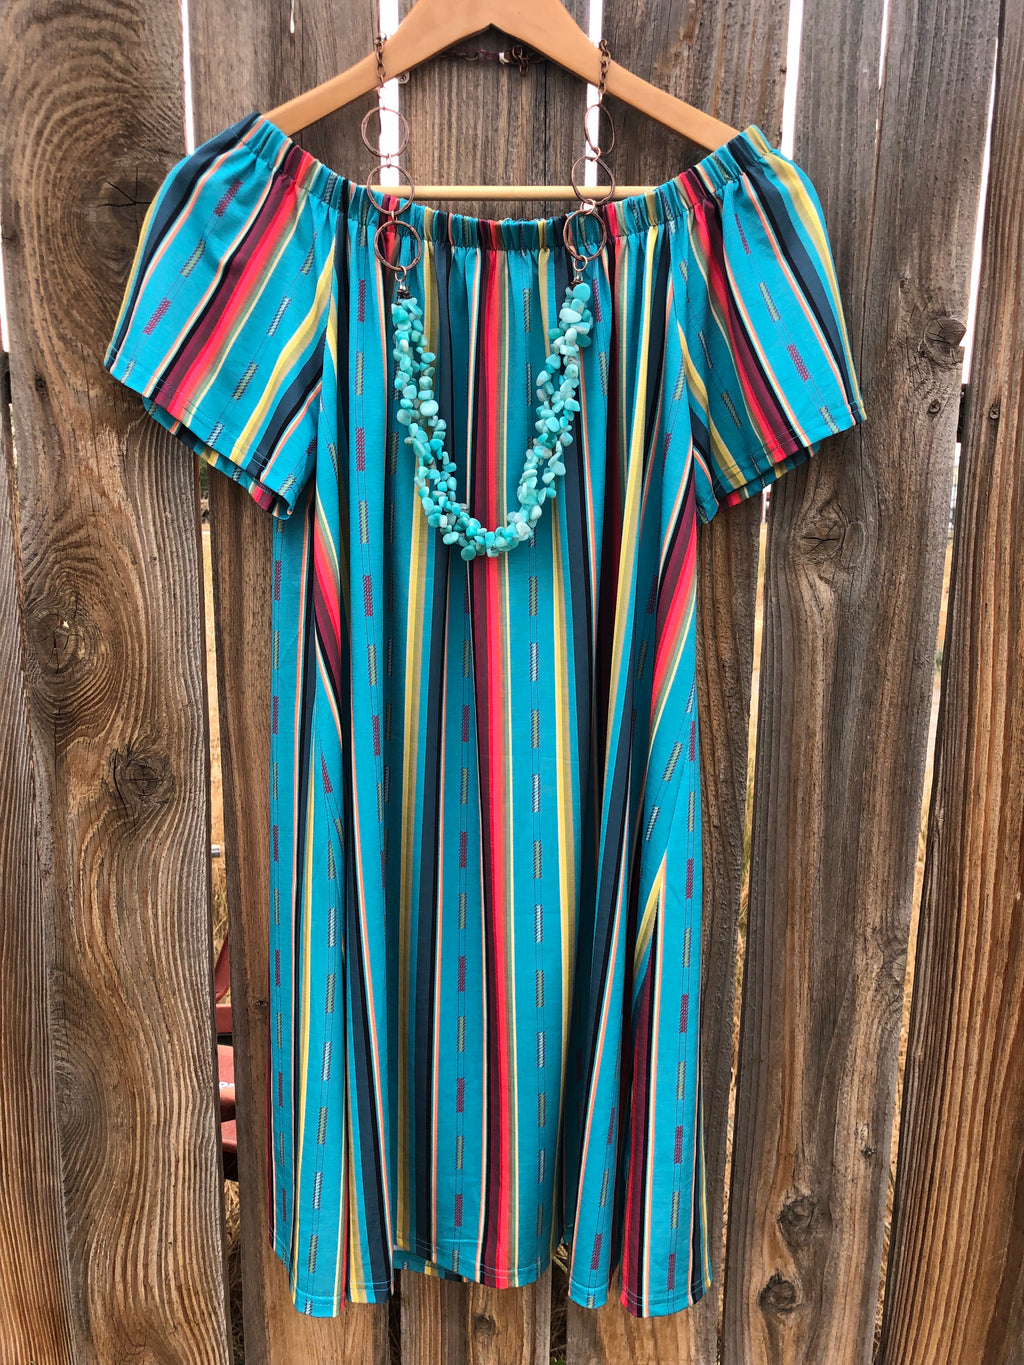 The Cabo Serape Stripe Dress